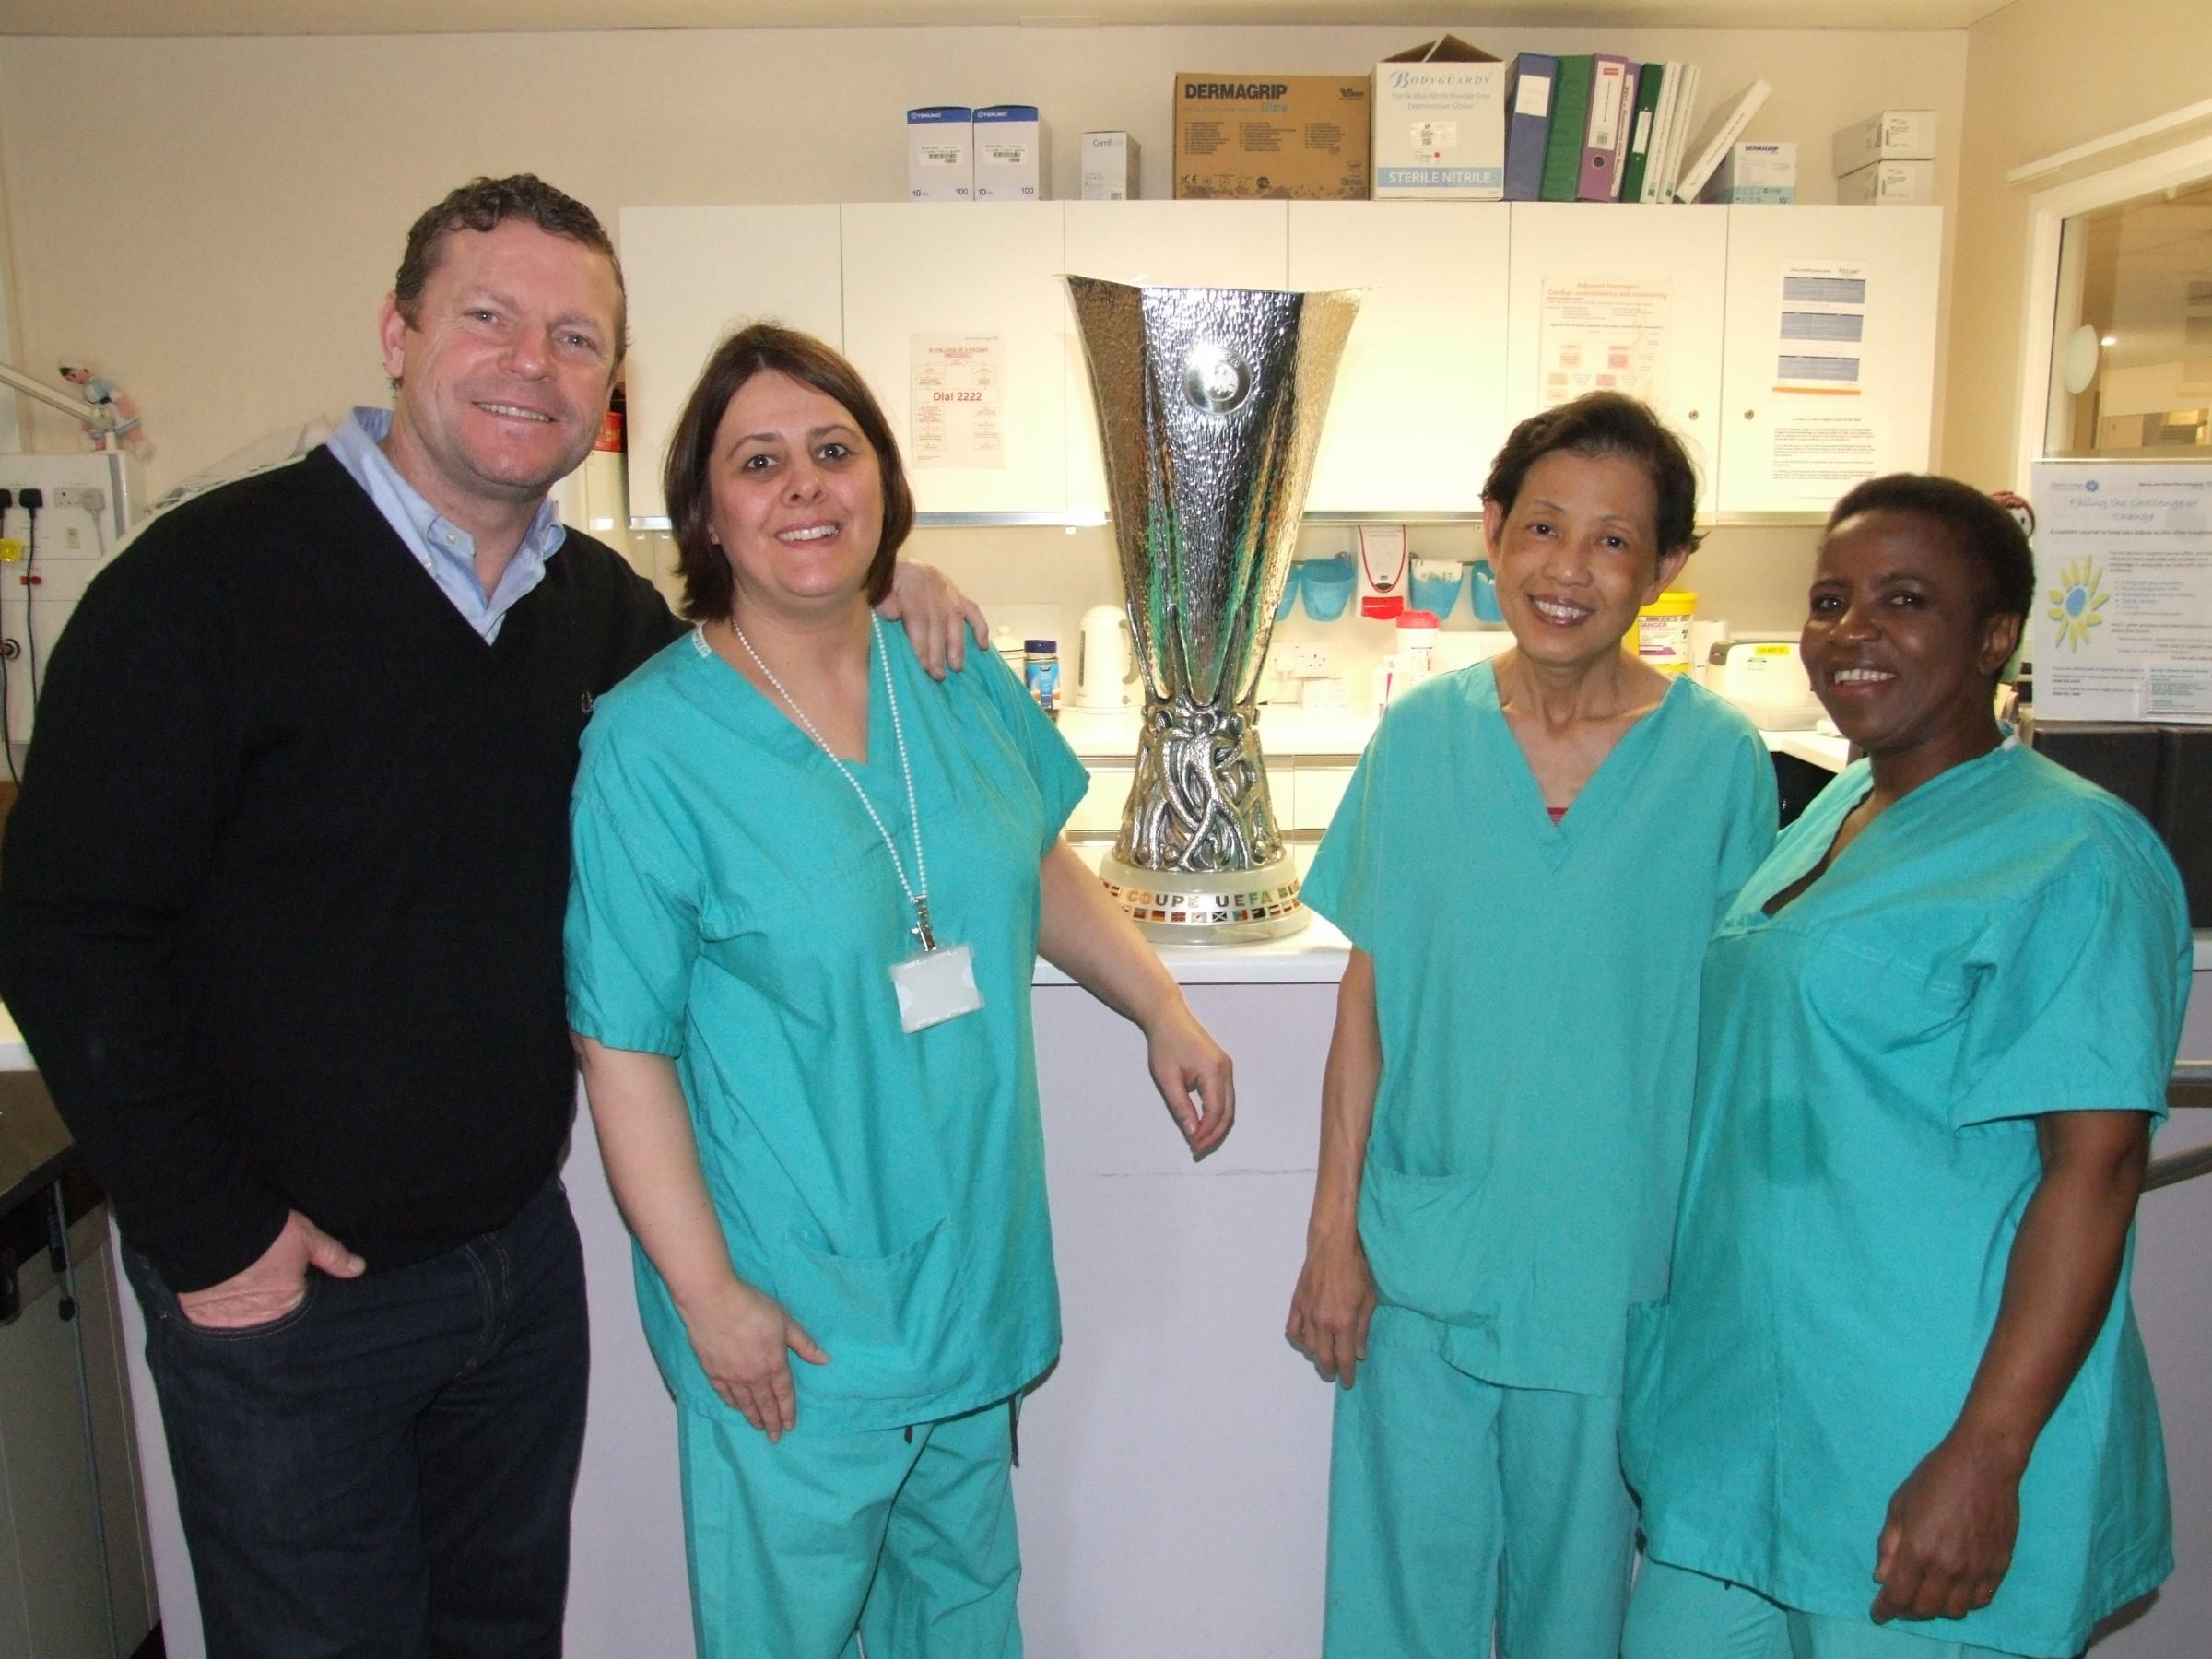 Staff and patients get their hands on famous football trophy